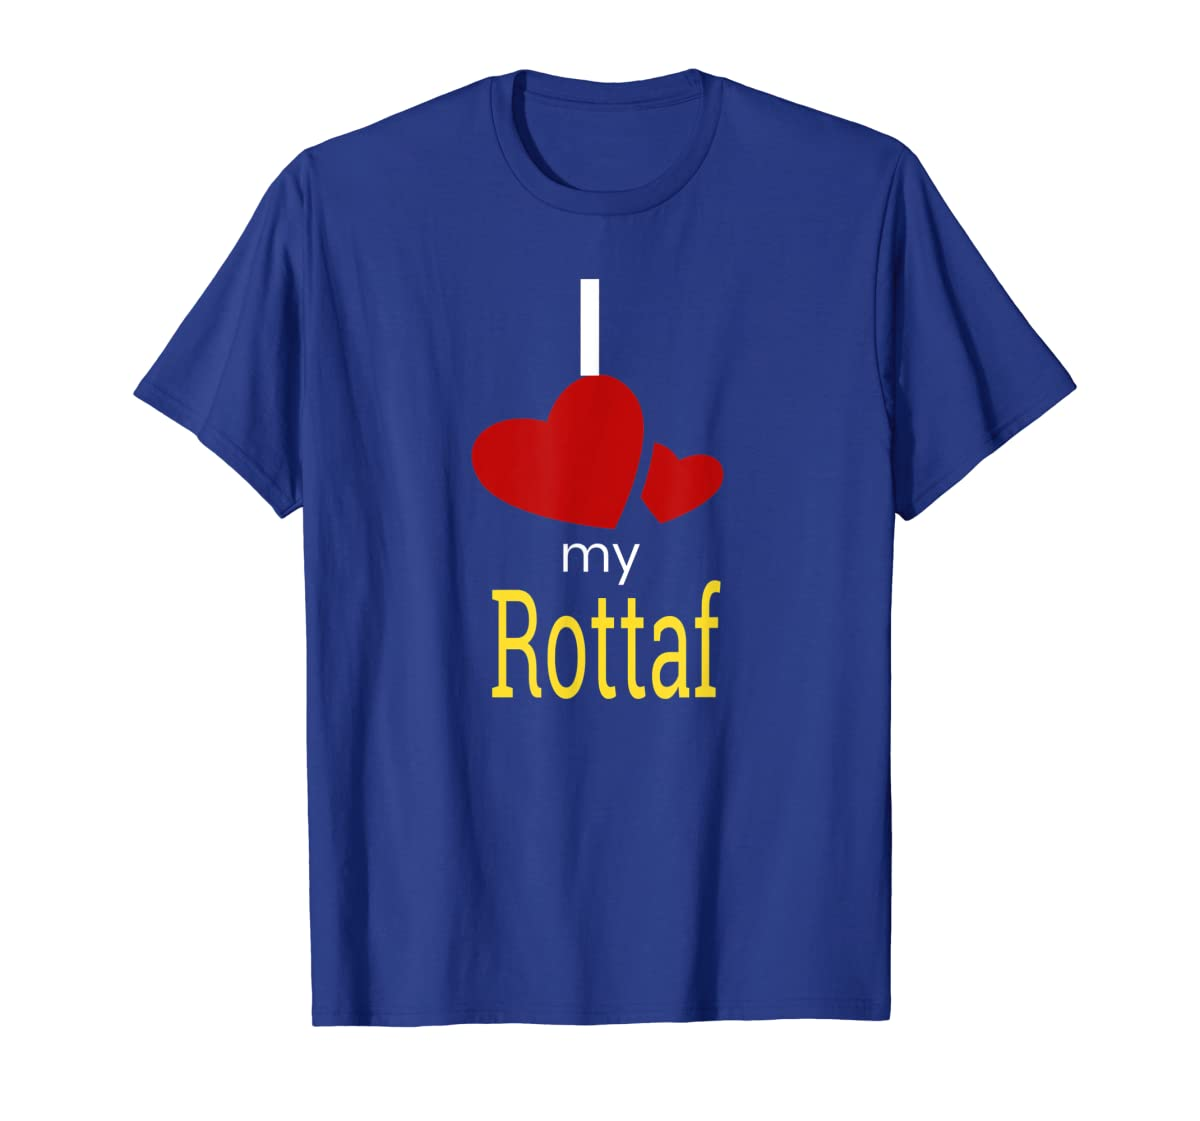 Rottaf Dog Shirt Love Rottweiler + Afghan Hound =  T-Shirt-Men's T-Shirt-Royal